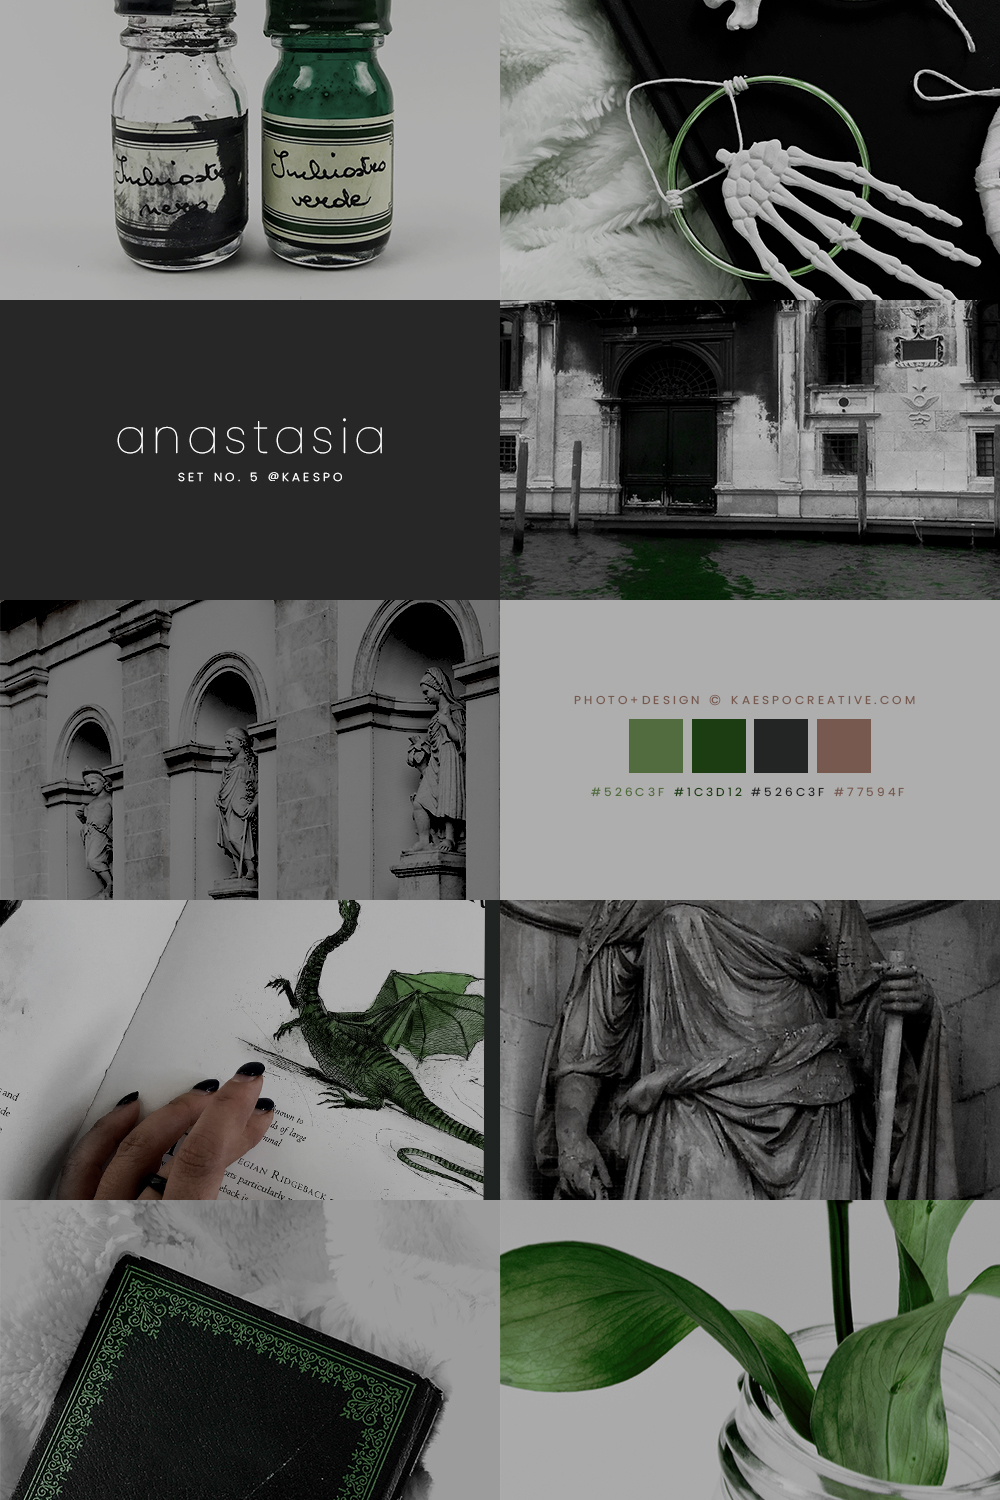 Emerald Aesthetics & Photography by KAESPO Design + Branding